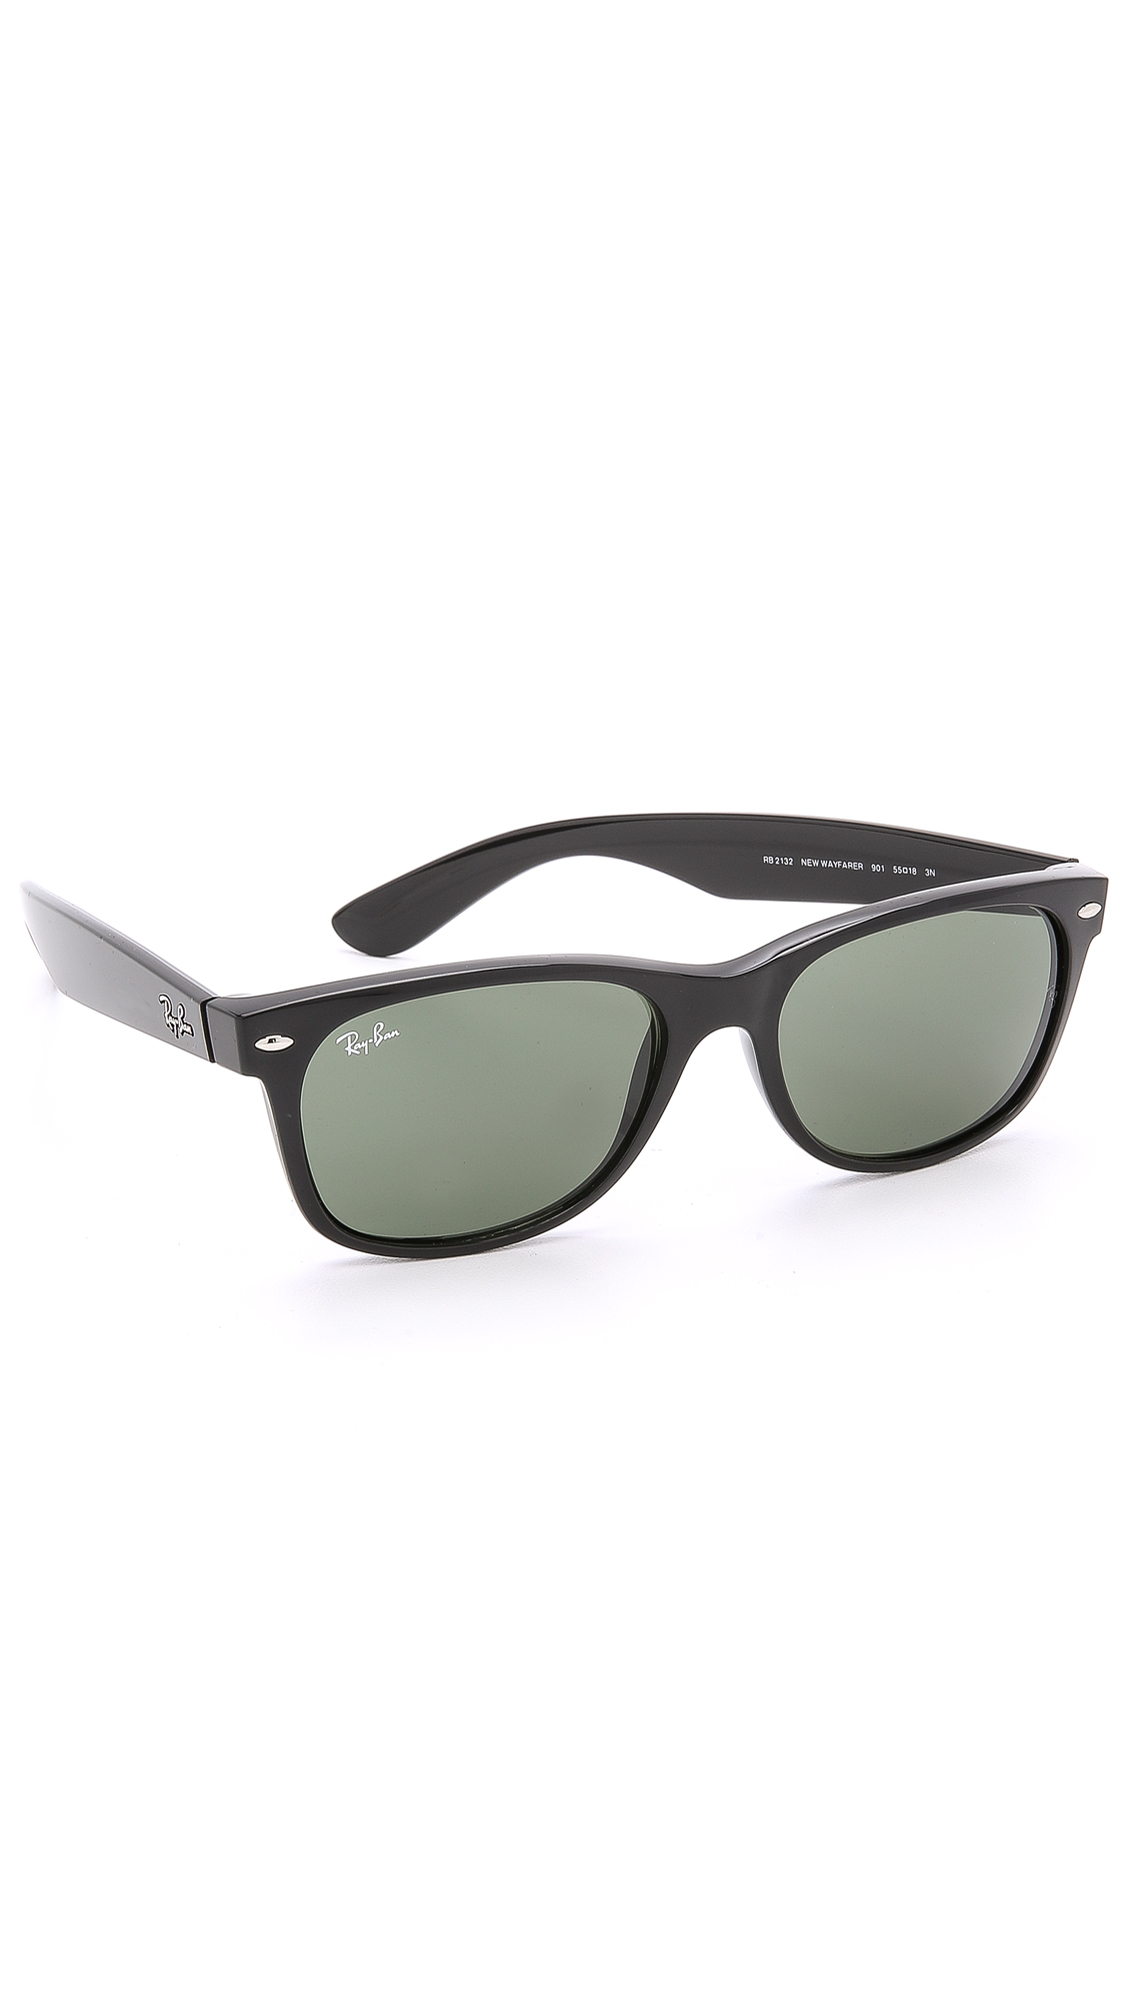 ray ban new wayfarer sunglasses in black for men black. Black Bedroom Furniture Sets. Home Design Ideas